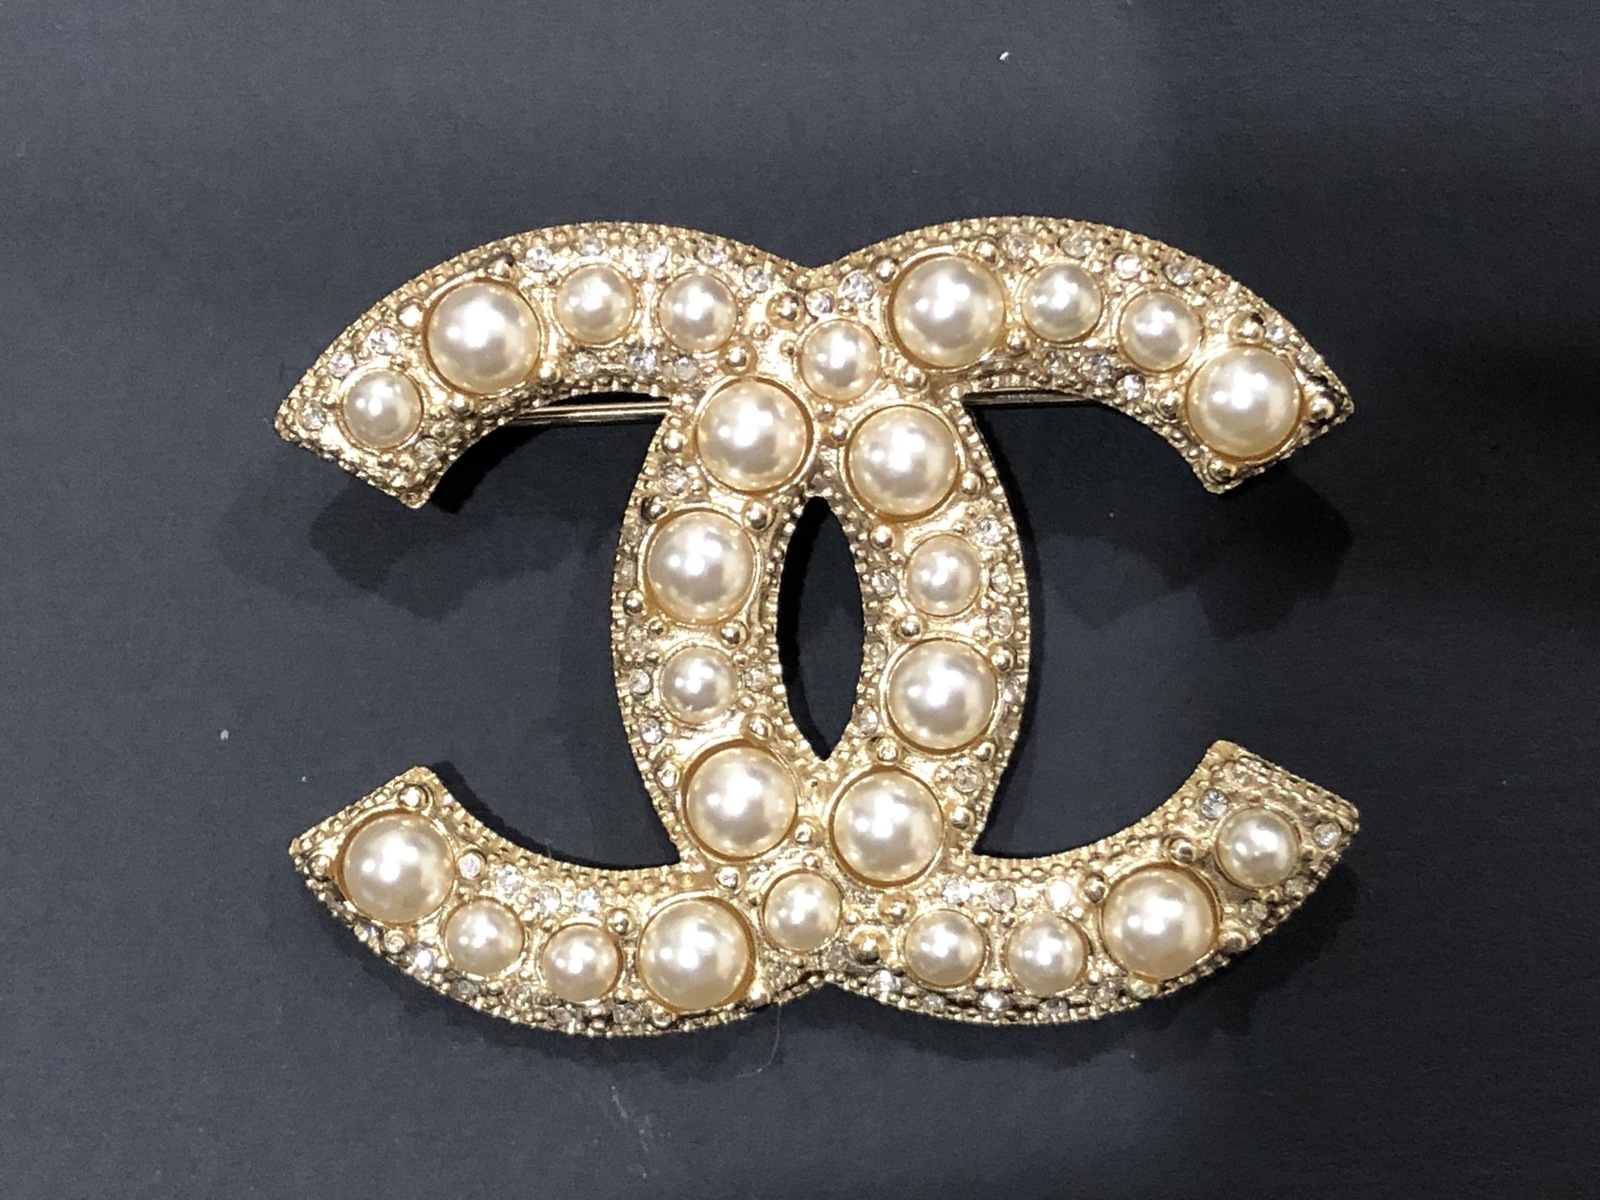 NEW 100% AUTHENTIC CHANEL LIMITED EDITION Gold Pearl CC Logo Iconic PIN BROOCH